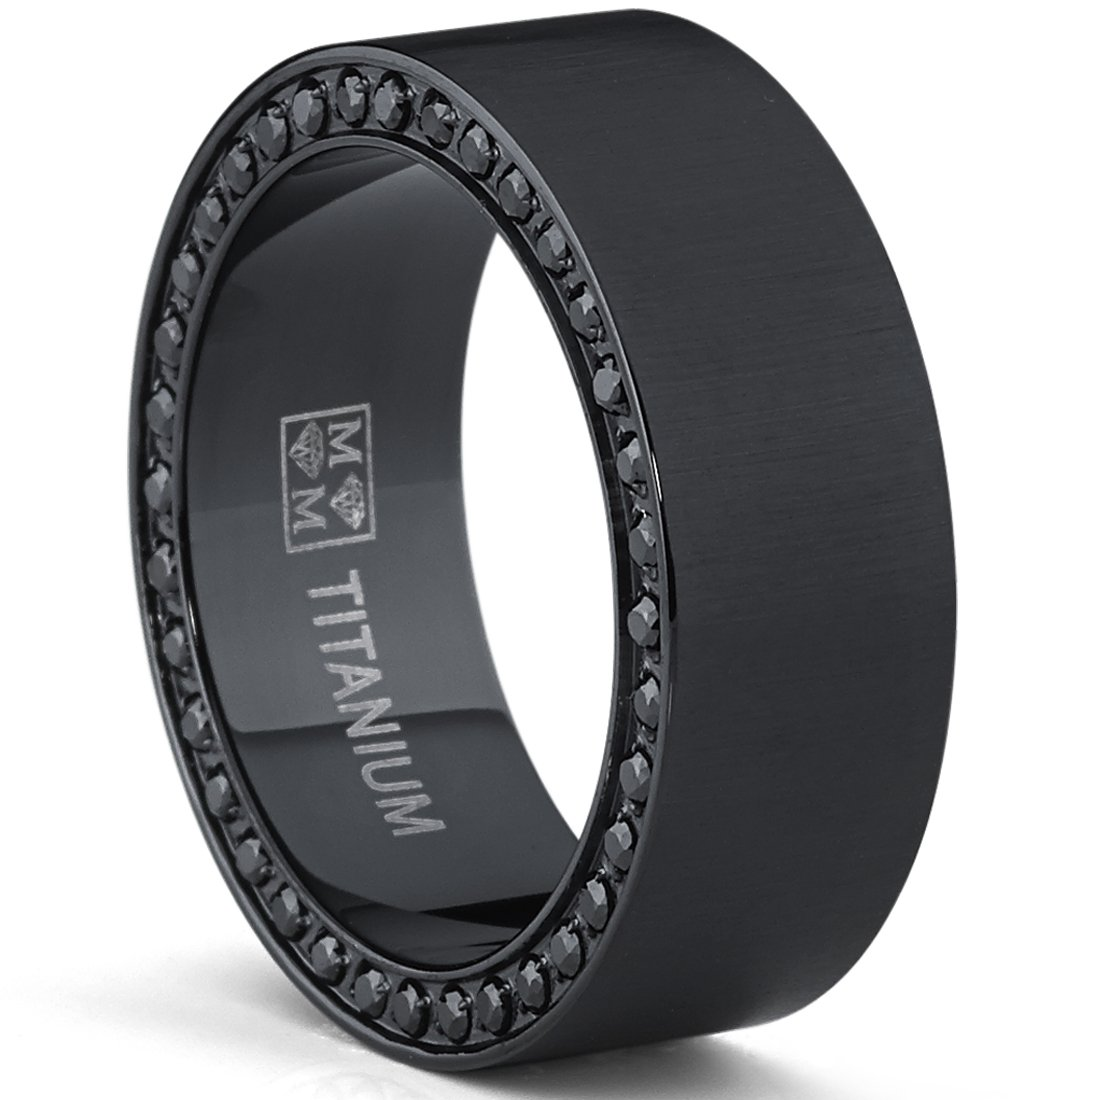 Black Titanium Men's Brushed Wedding Band Ring with Black Cubic Zirconia,Pave Set Eternity Ring TIR-1159